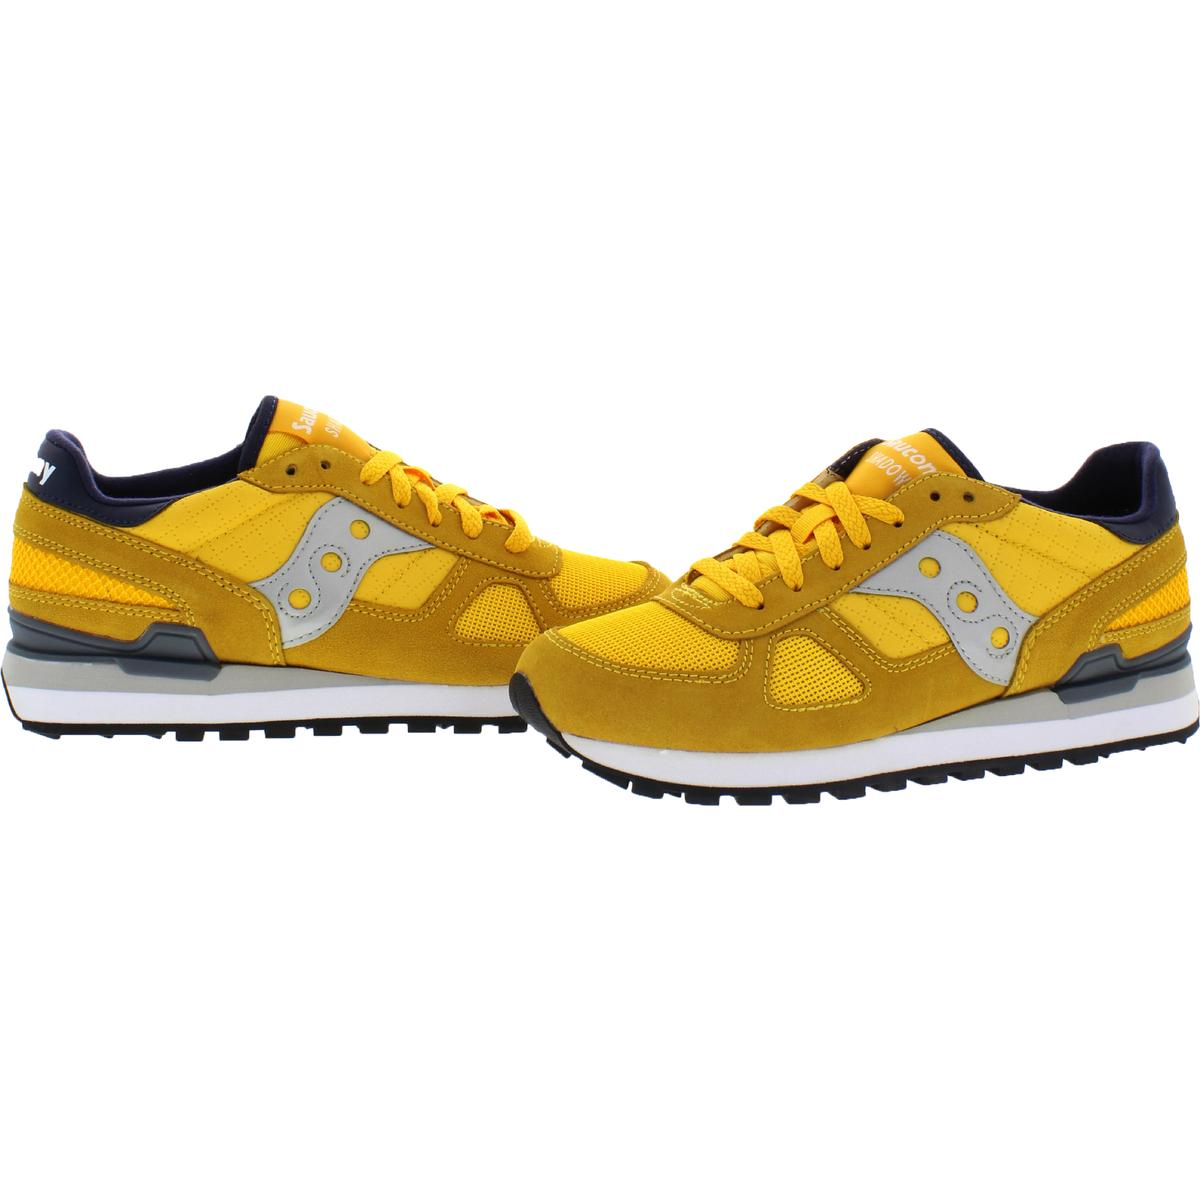 Saucony-Mens-Shadow-Original-Trainers-Suede-Comfort-Sneakers-Shoes-BHFO-0431 miniatuur 37